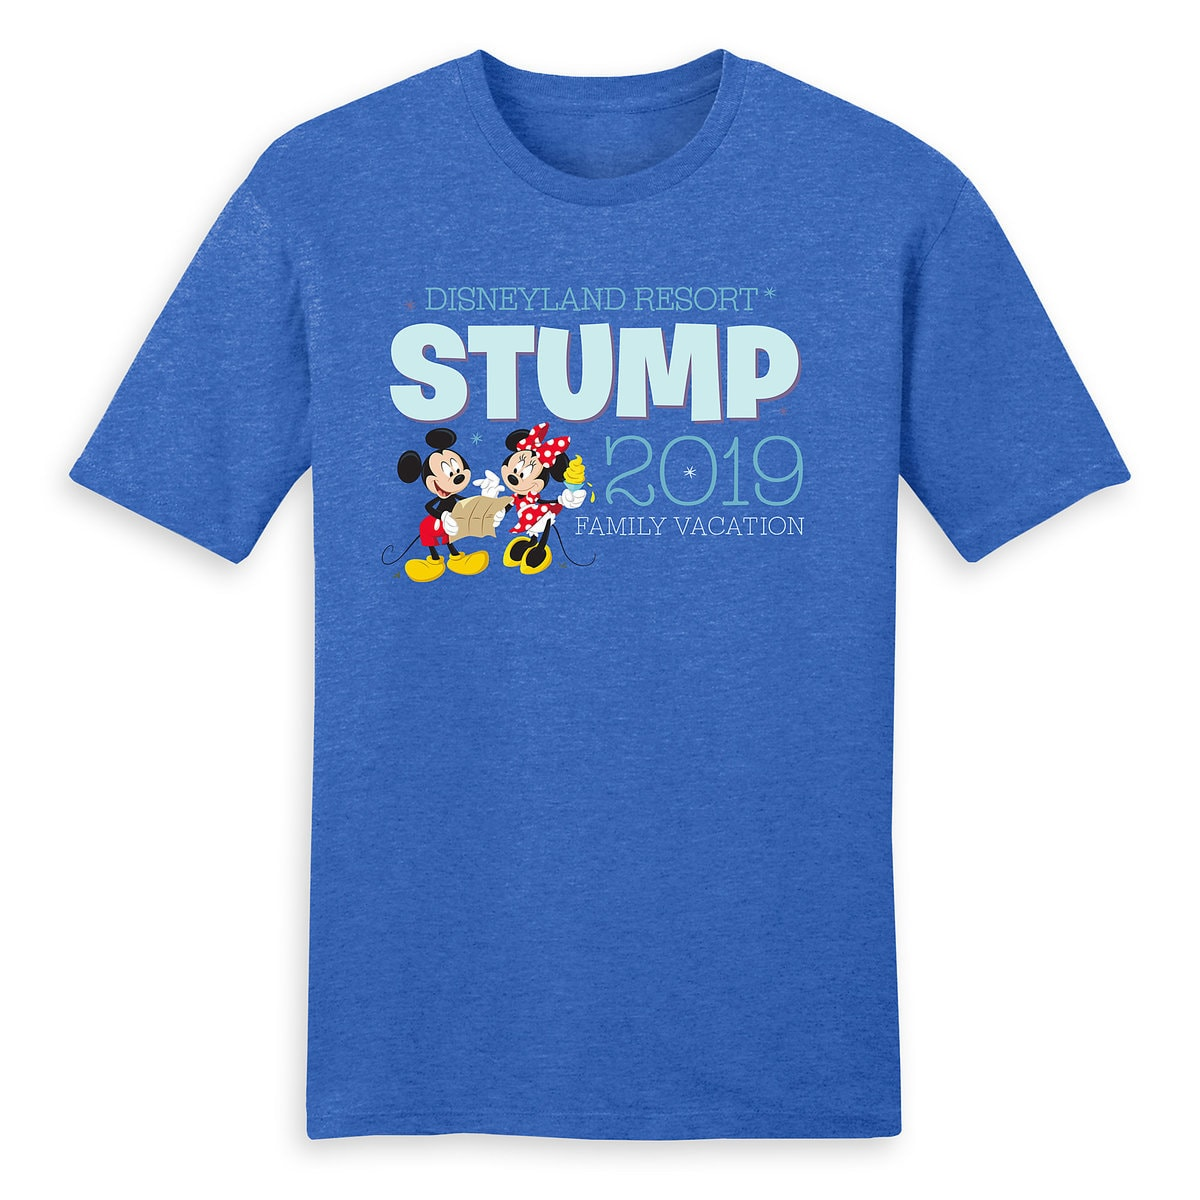 3dcf0958 Product Image of Mickey and Minnie Mouse Family Vacation T-Shirt for Men -  Disneyland